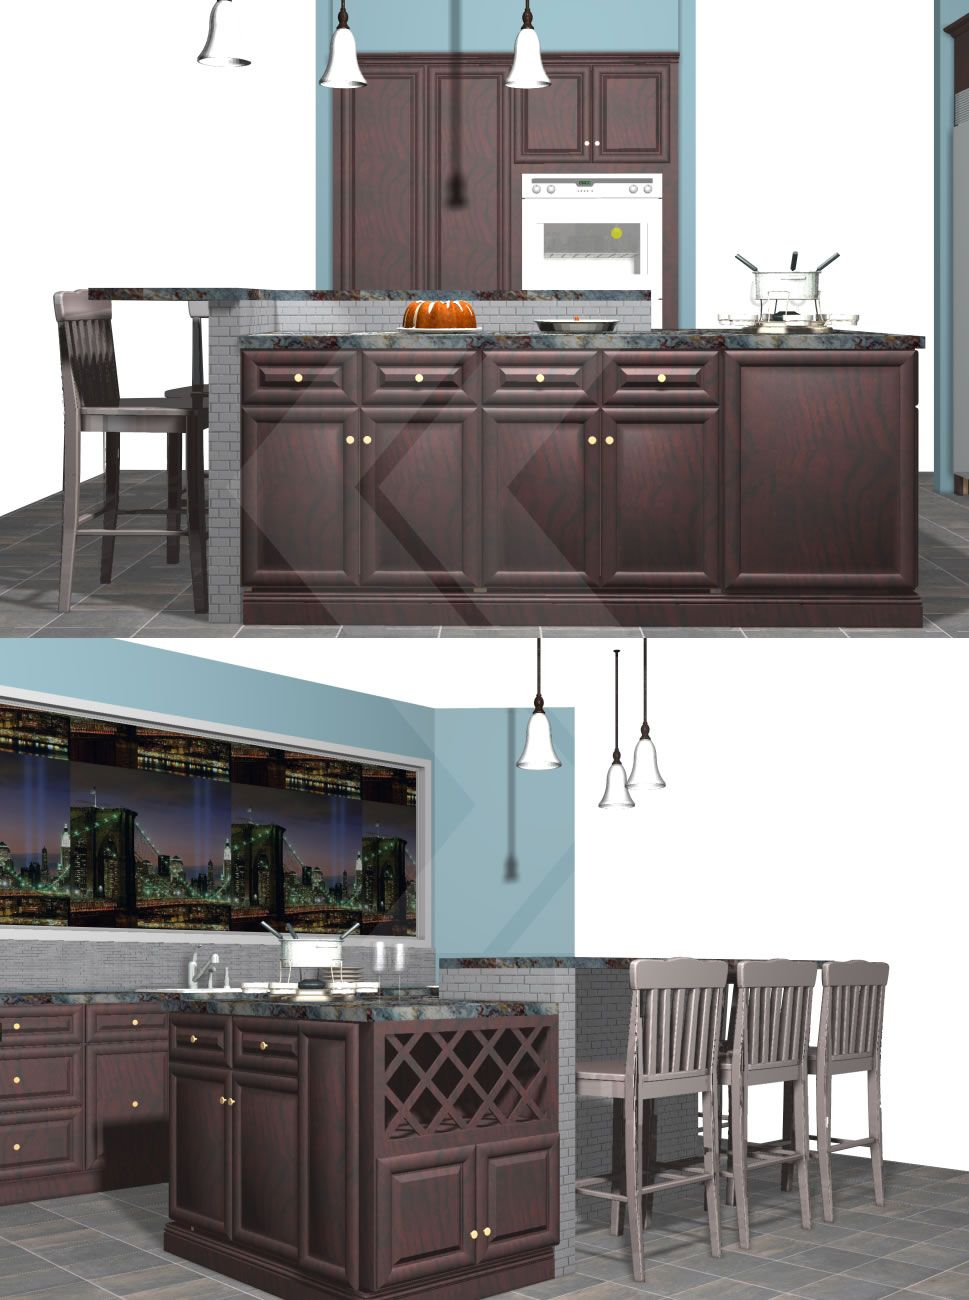 Create A Unique Island, Using Base Cabinets, Wall Cabinets, And A Bar Height